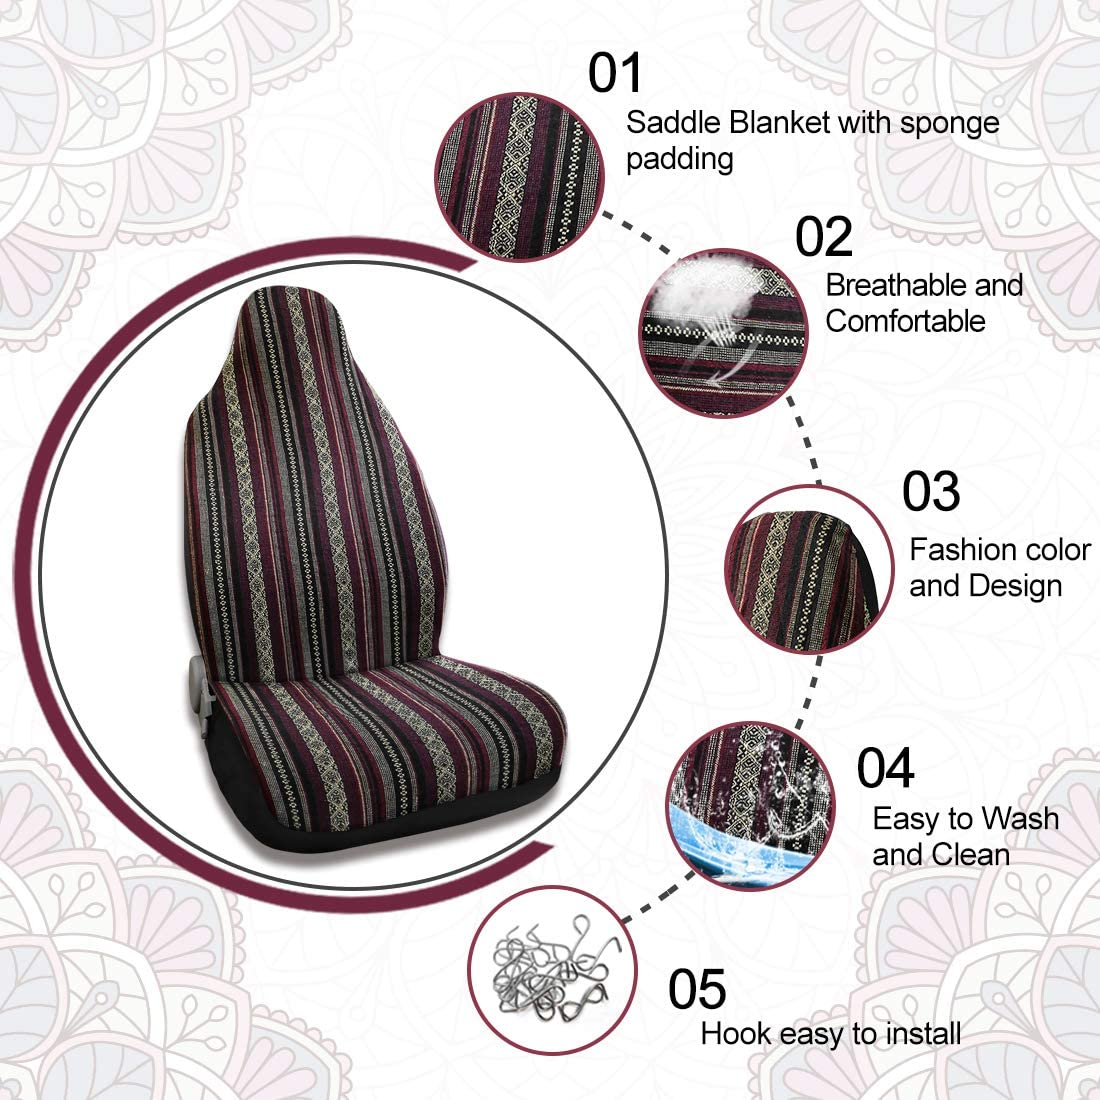 X AUTOHAUX Brown Universal Front Seat Cover Saddle Blanket Bucket Seat Cover with Seat-Belt Pad for Car SUV Truck 2pcs